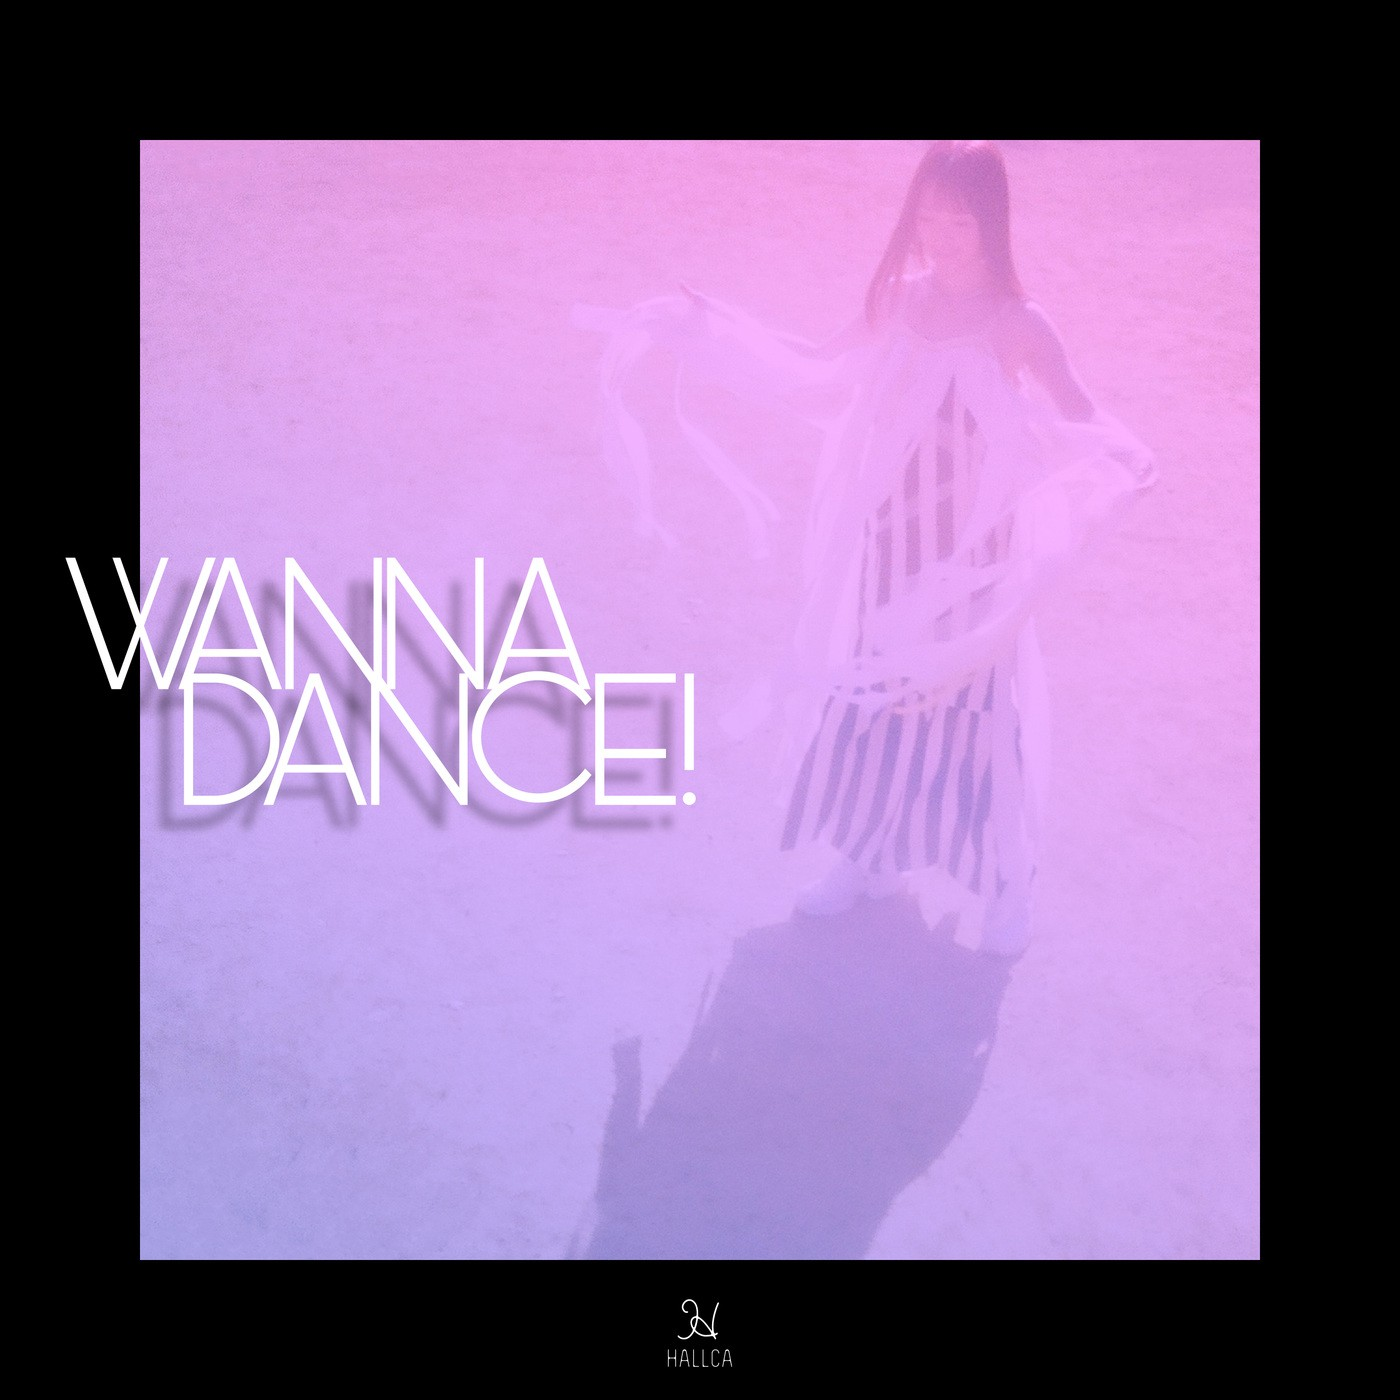 HALLCA – WANNA DANCE! [FLAC + MP3 320 / WEB] [2019.02.01]